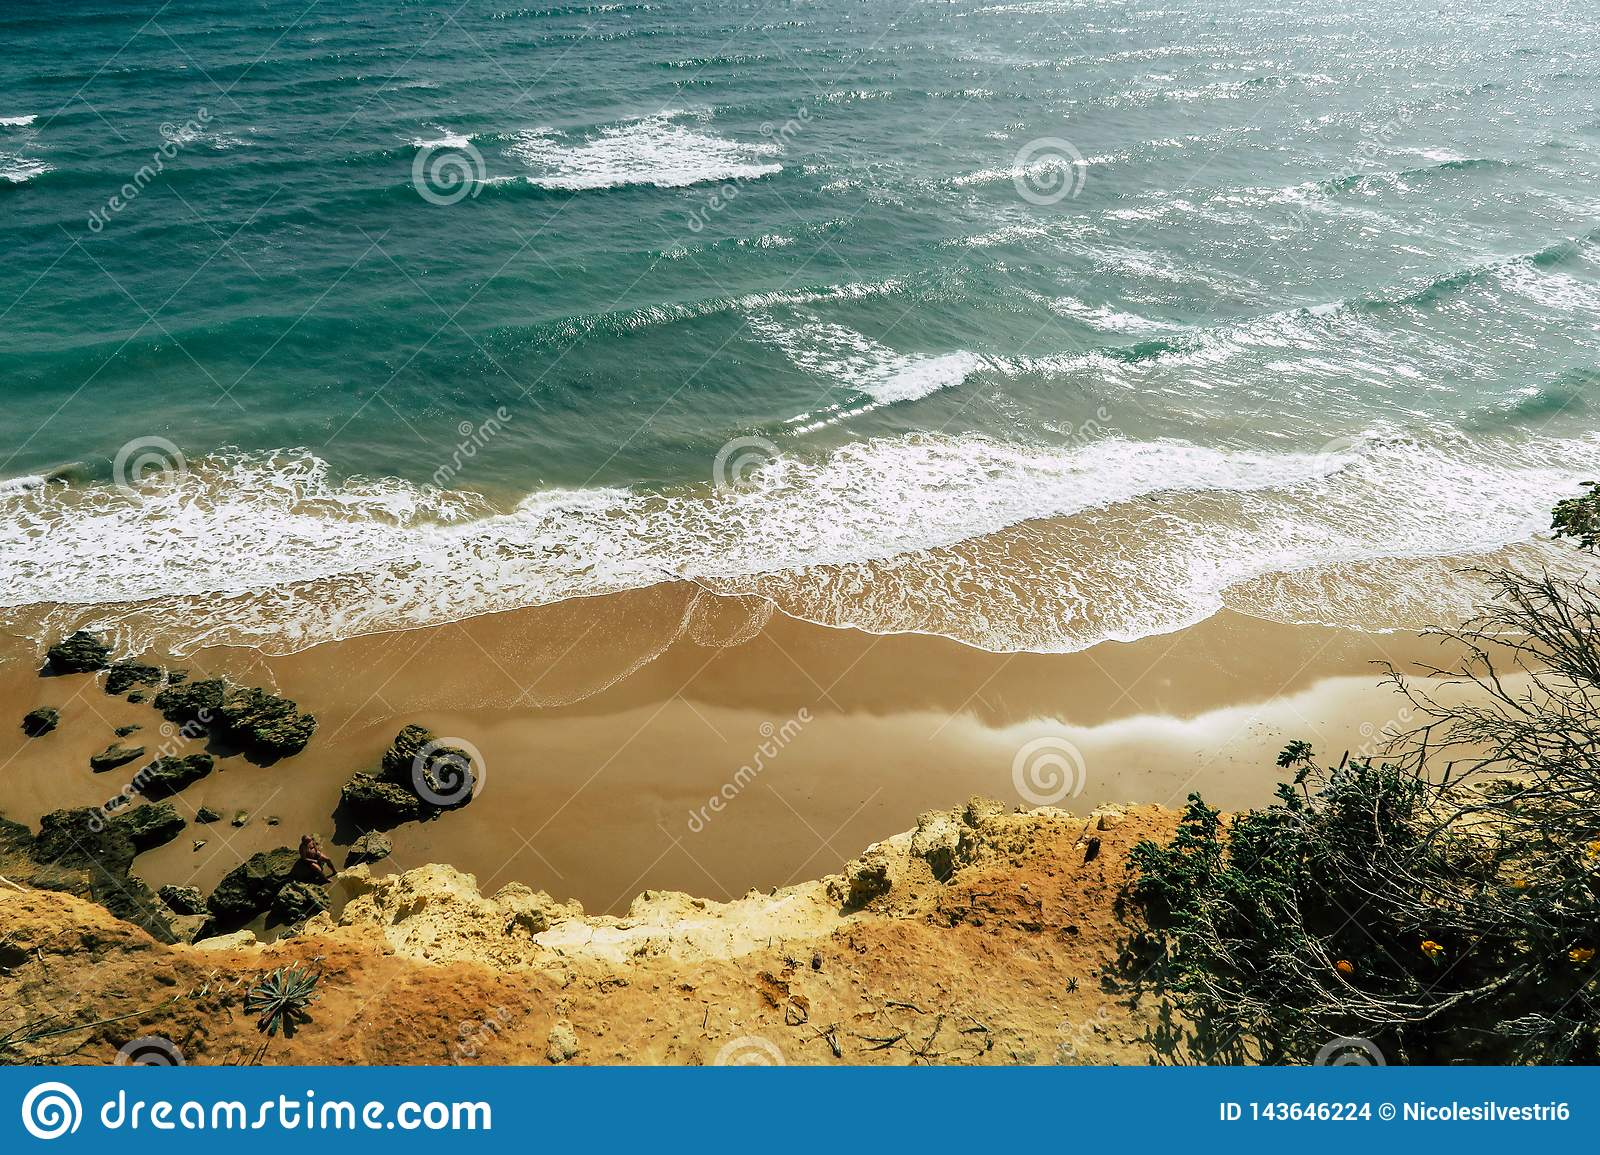 Beautiful spanish beach and coastline with cliffs: Sea, Waves with white crest during sunset